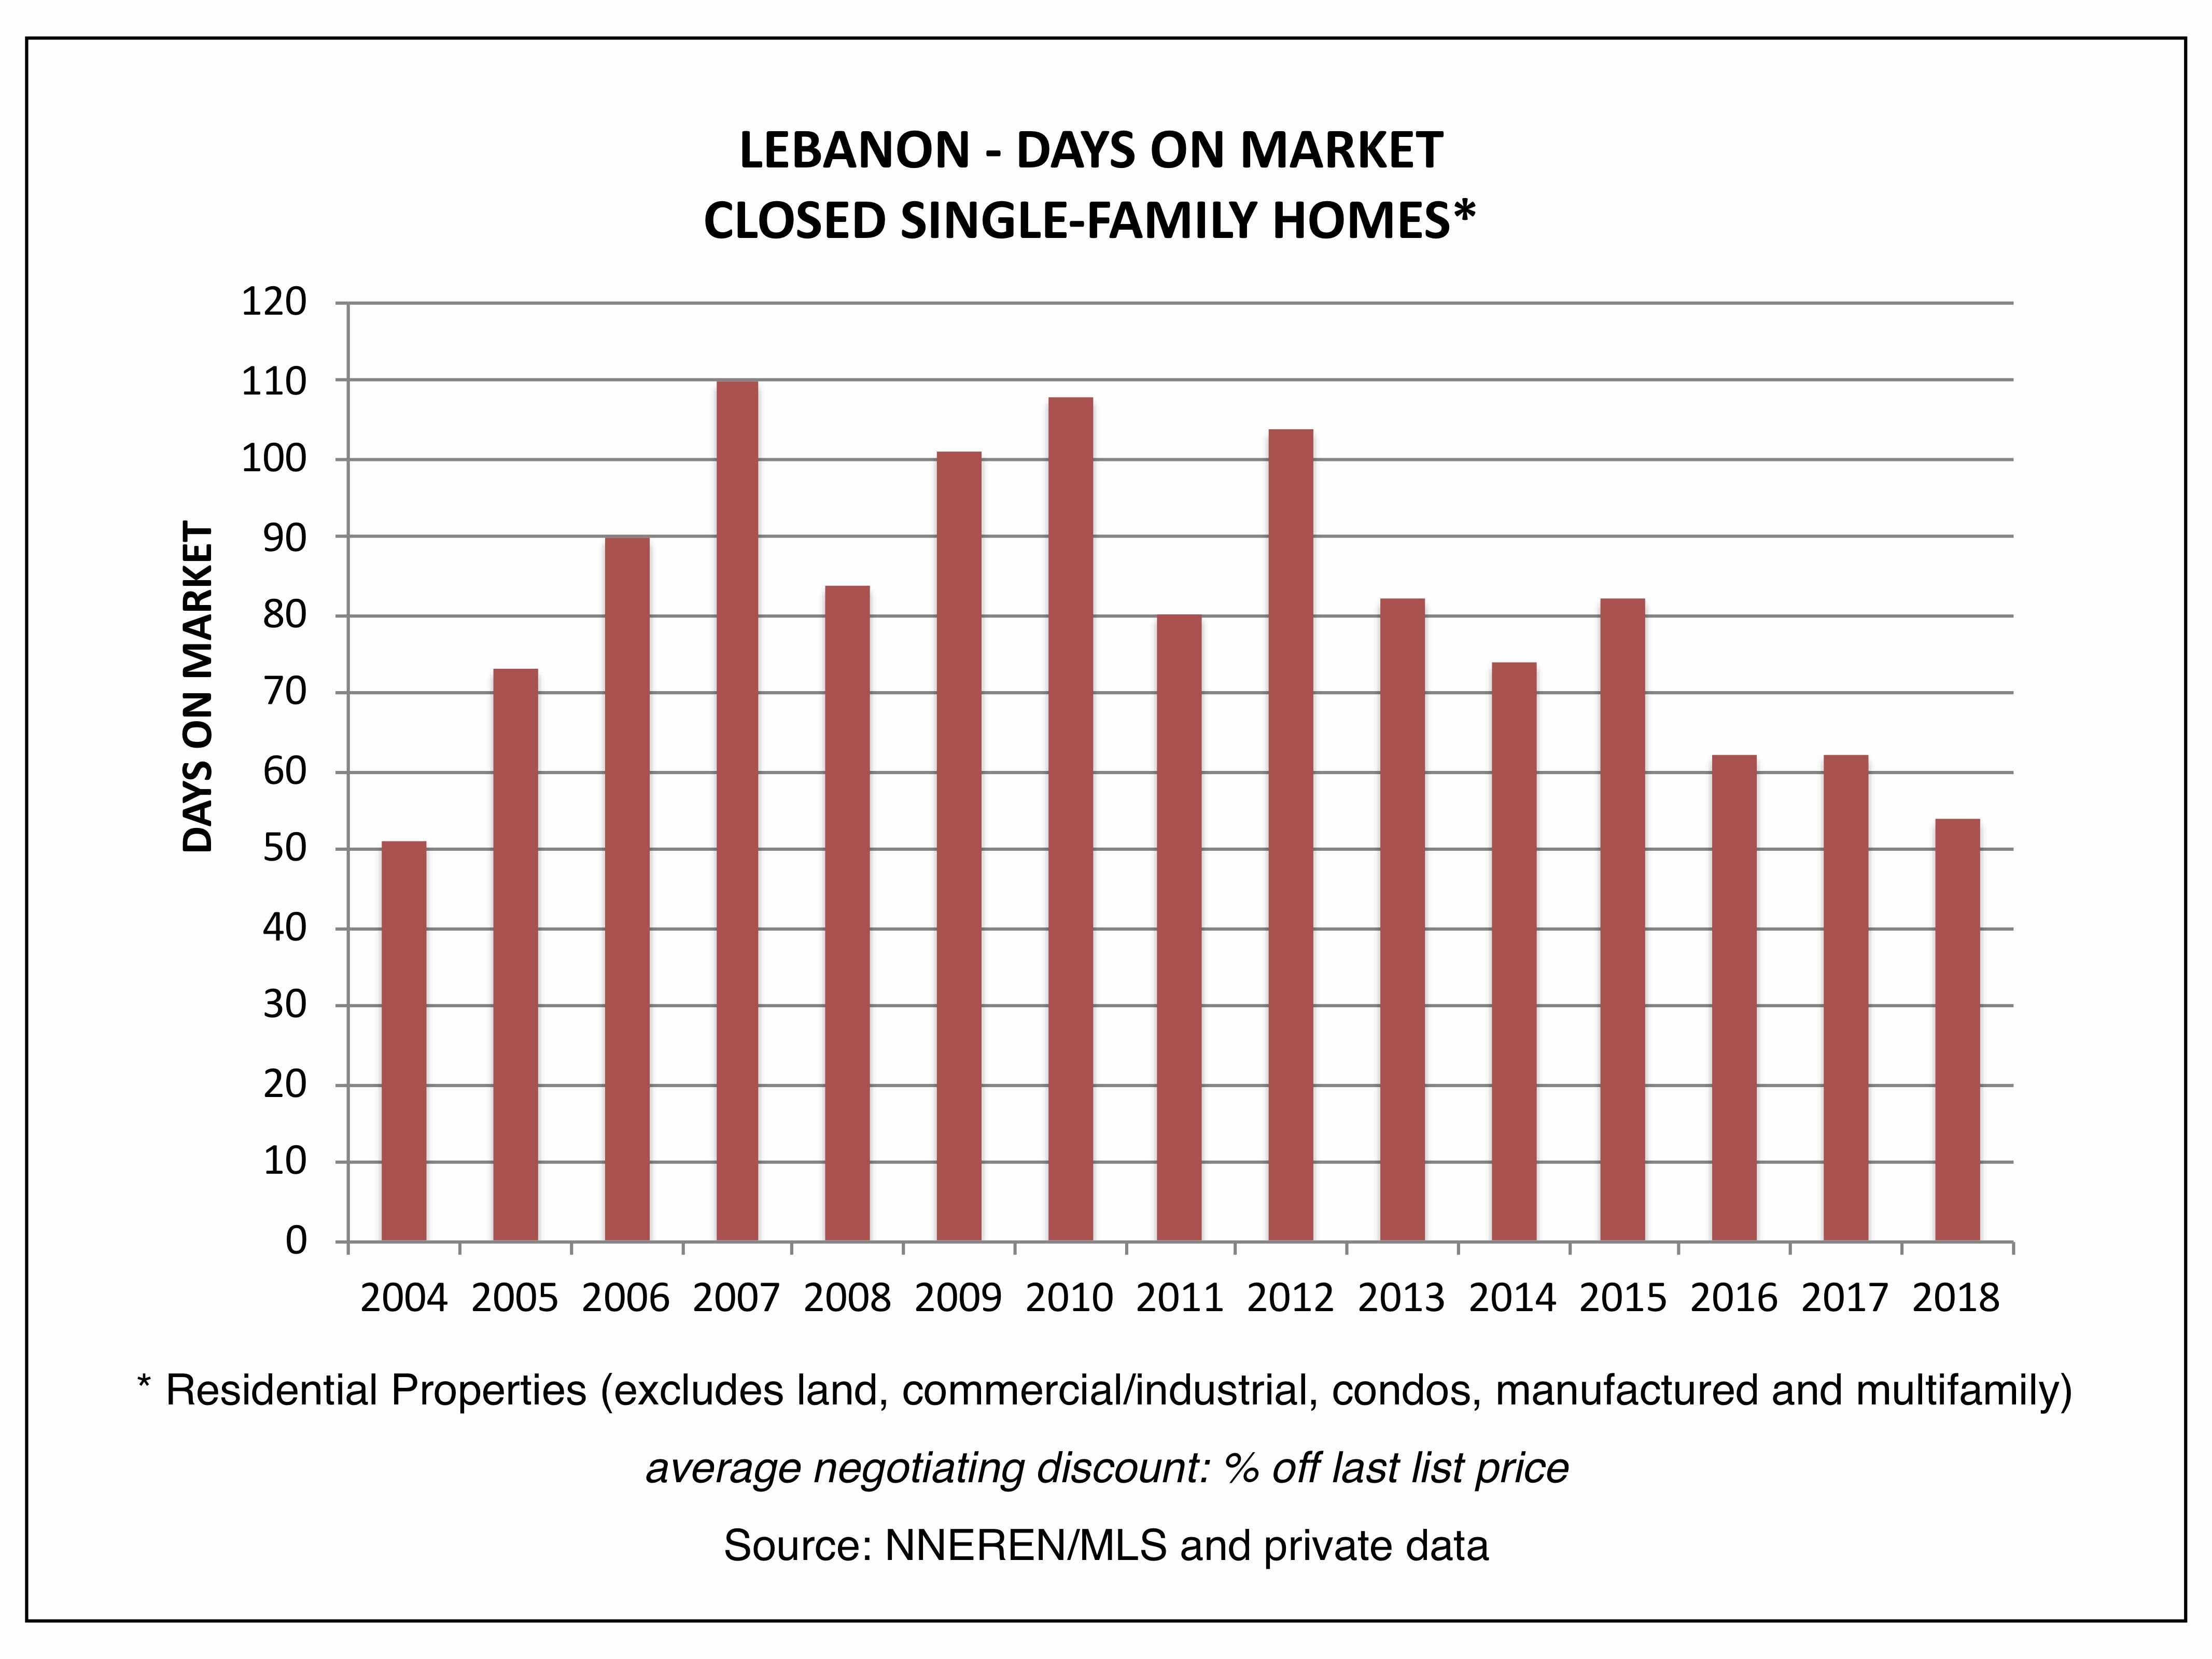 Lebanon NH Real Estate - Days on Market, Closed Homes